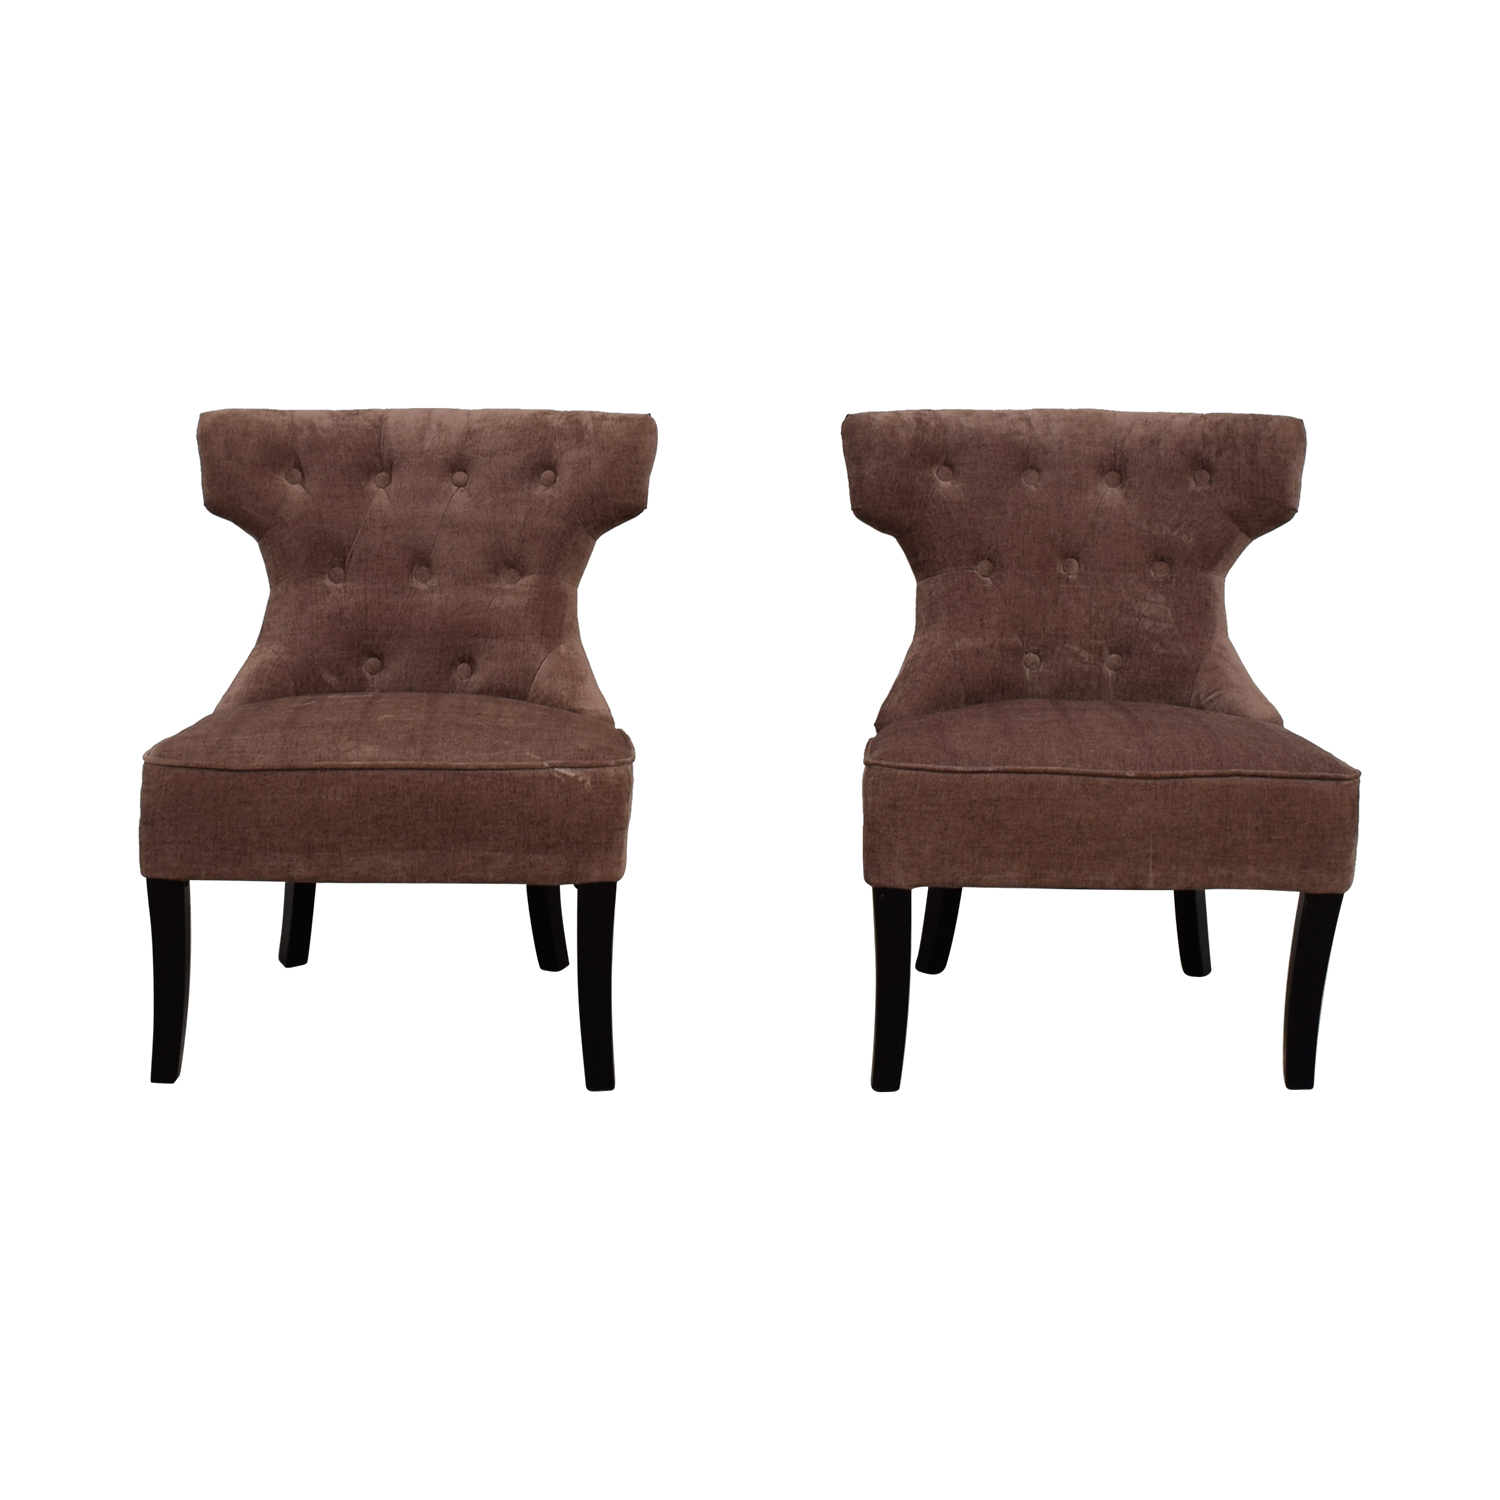 Lilac Tufted Upholstered Accent Chairs / Accent Chairs